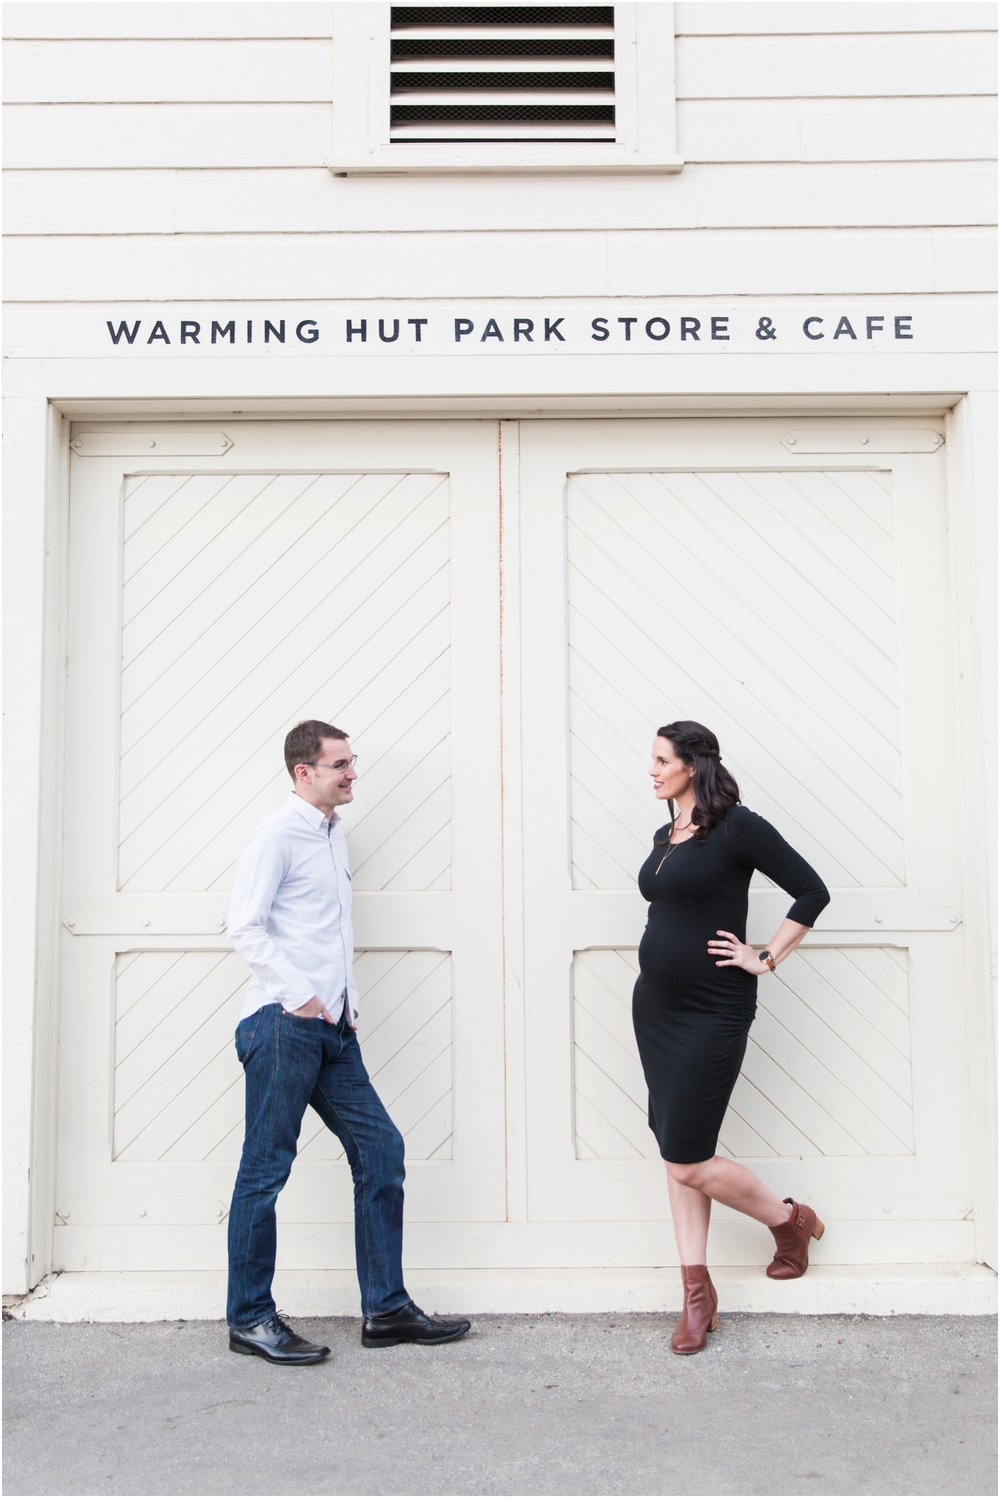 Crissy Field San Francisco maternity pictures by Briana Calderon Photography_0277.jpg